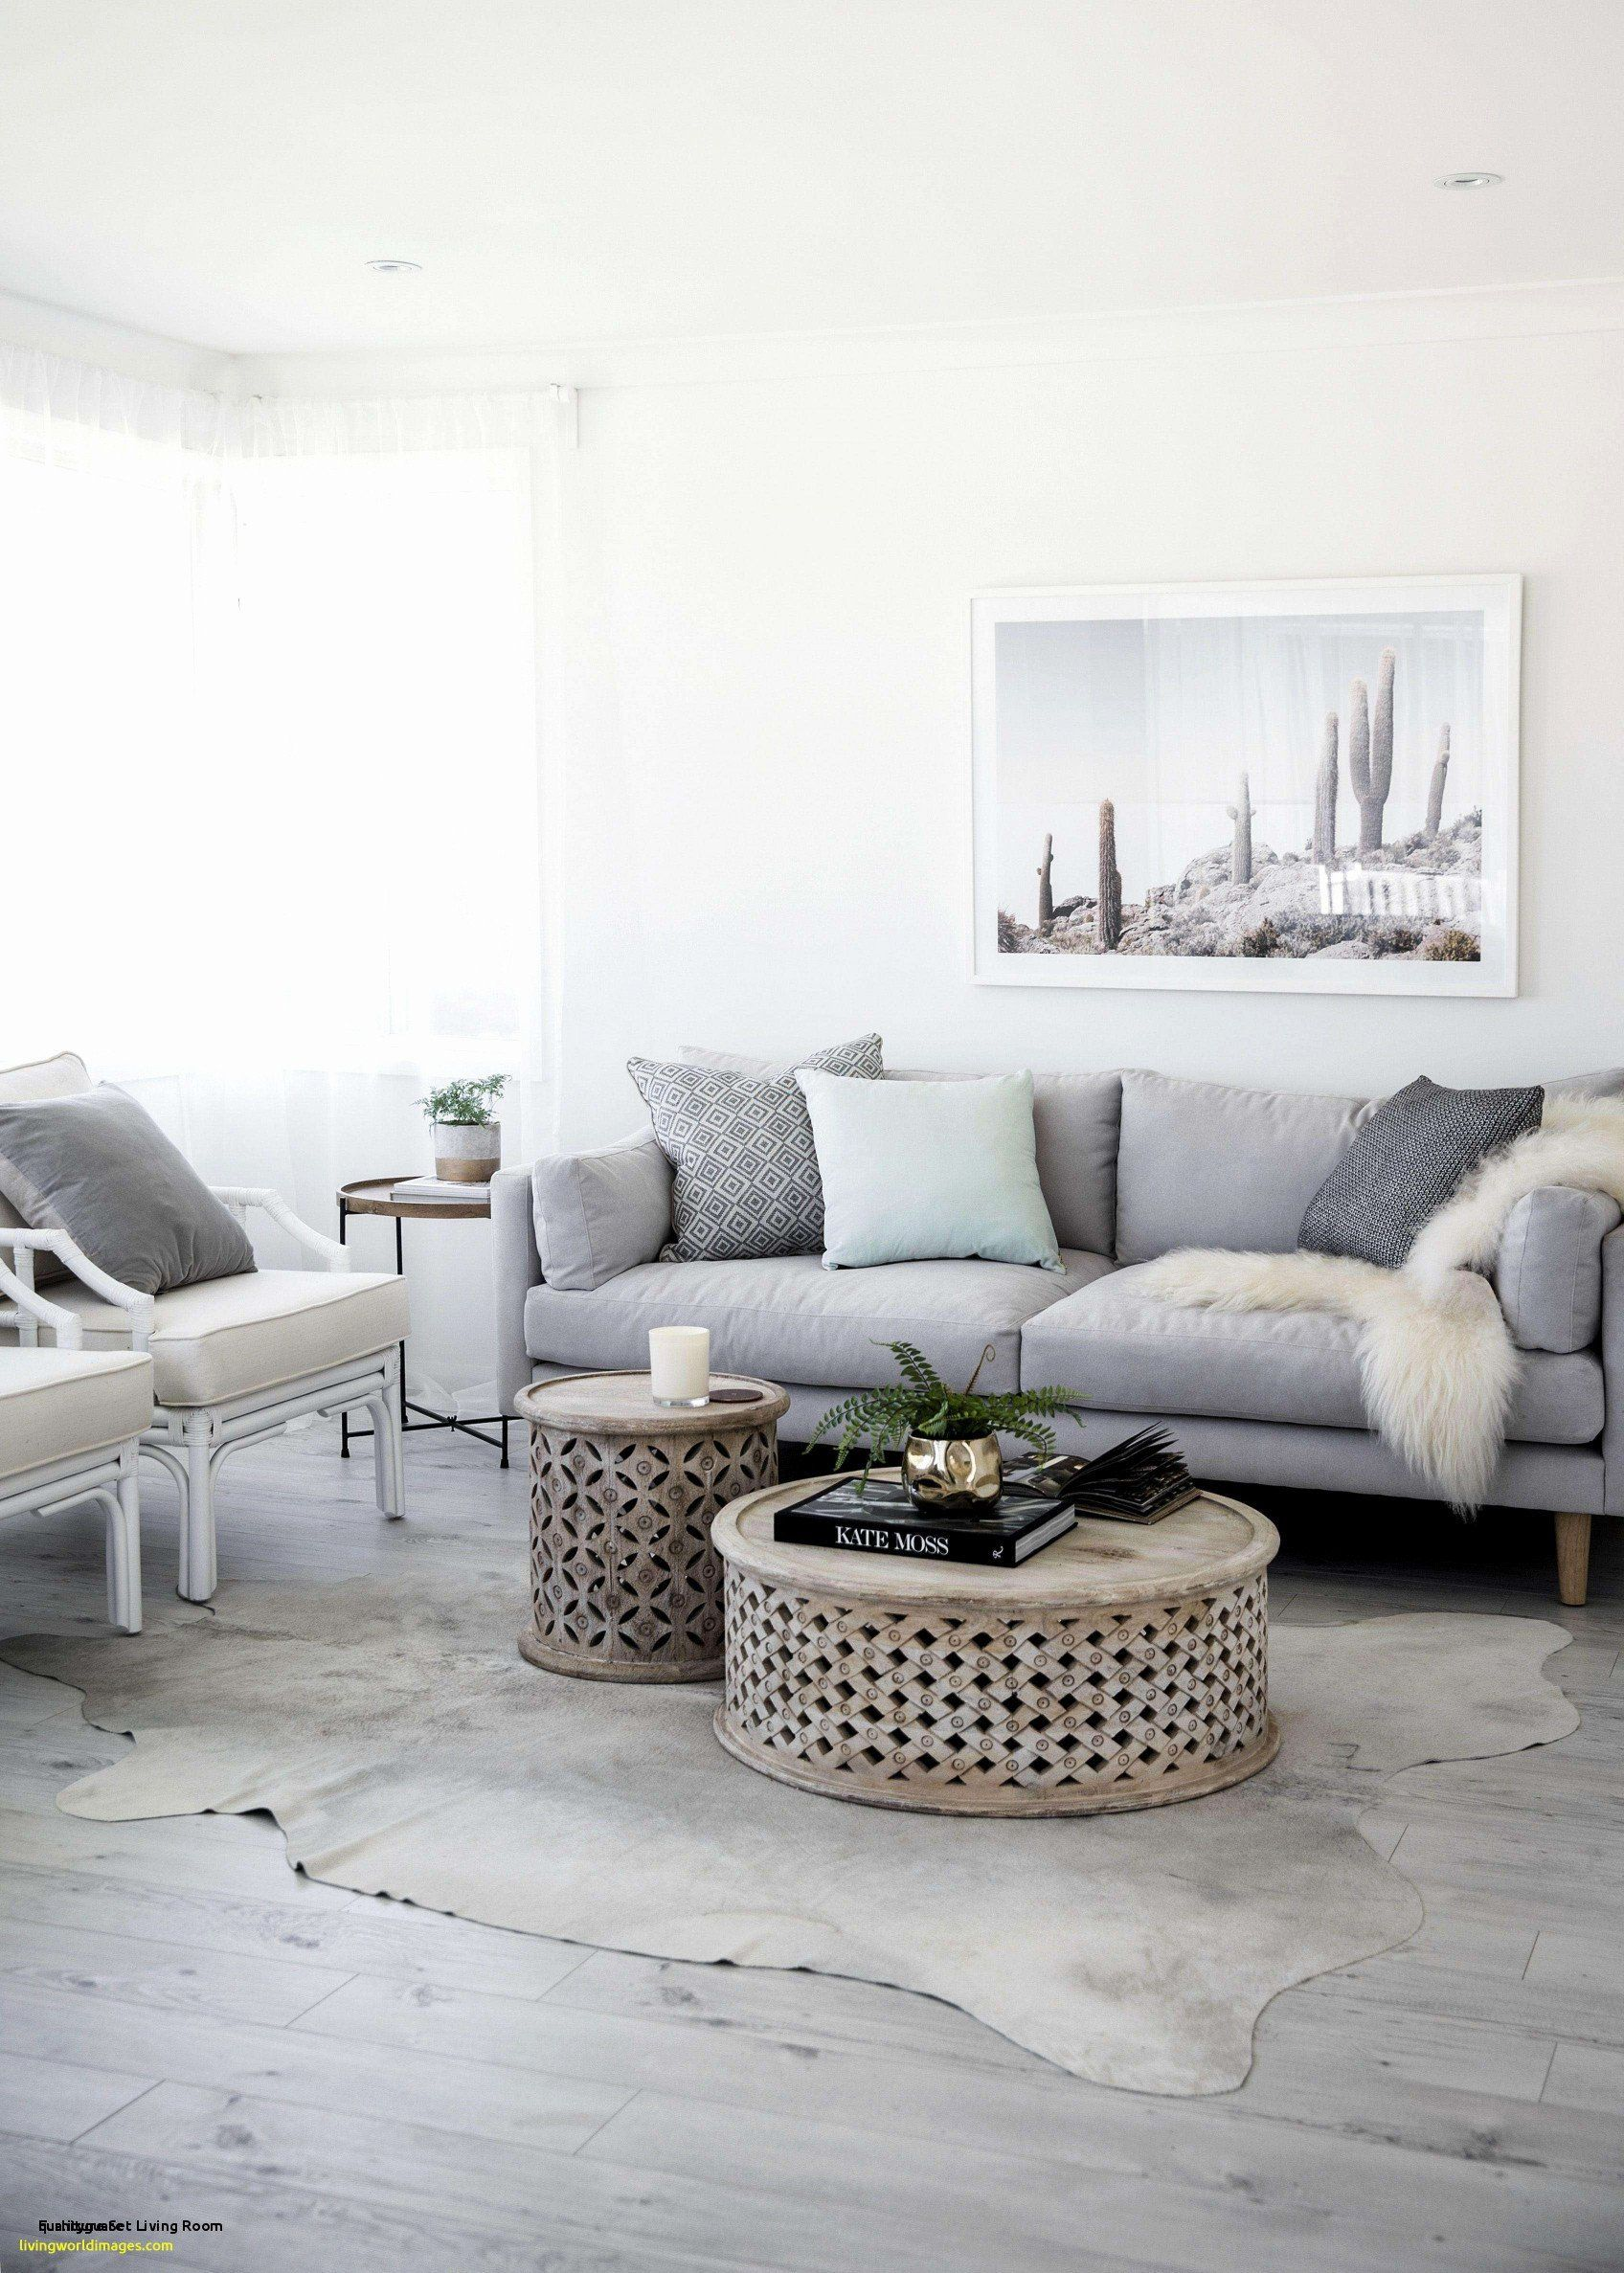 Living Rooms With Red Couches Inspirational Macys Furniture Columbus Ohio Best Living Room Design New In 2020 Grey Sofa Living Room Living Room Grey Beige Living Rooms